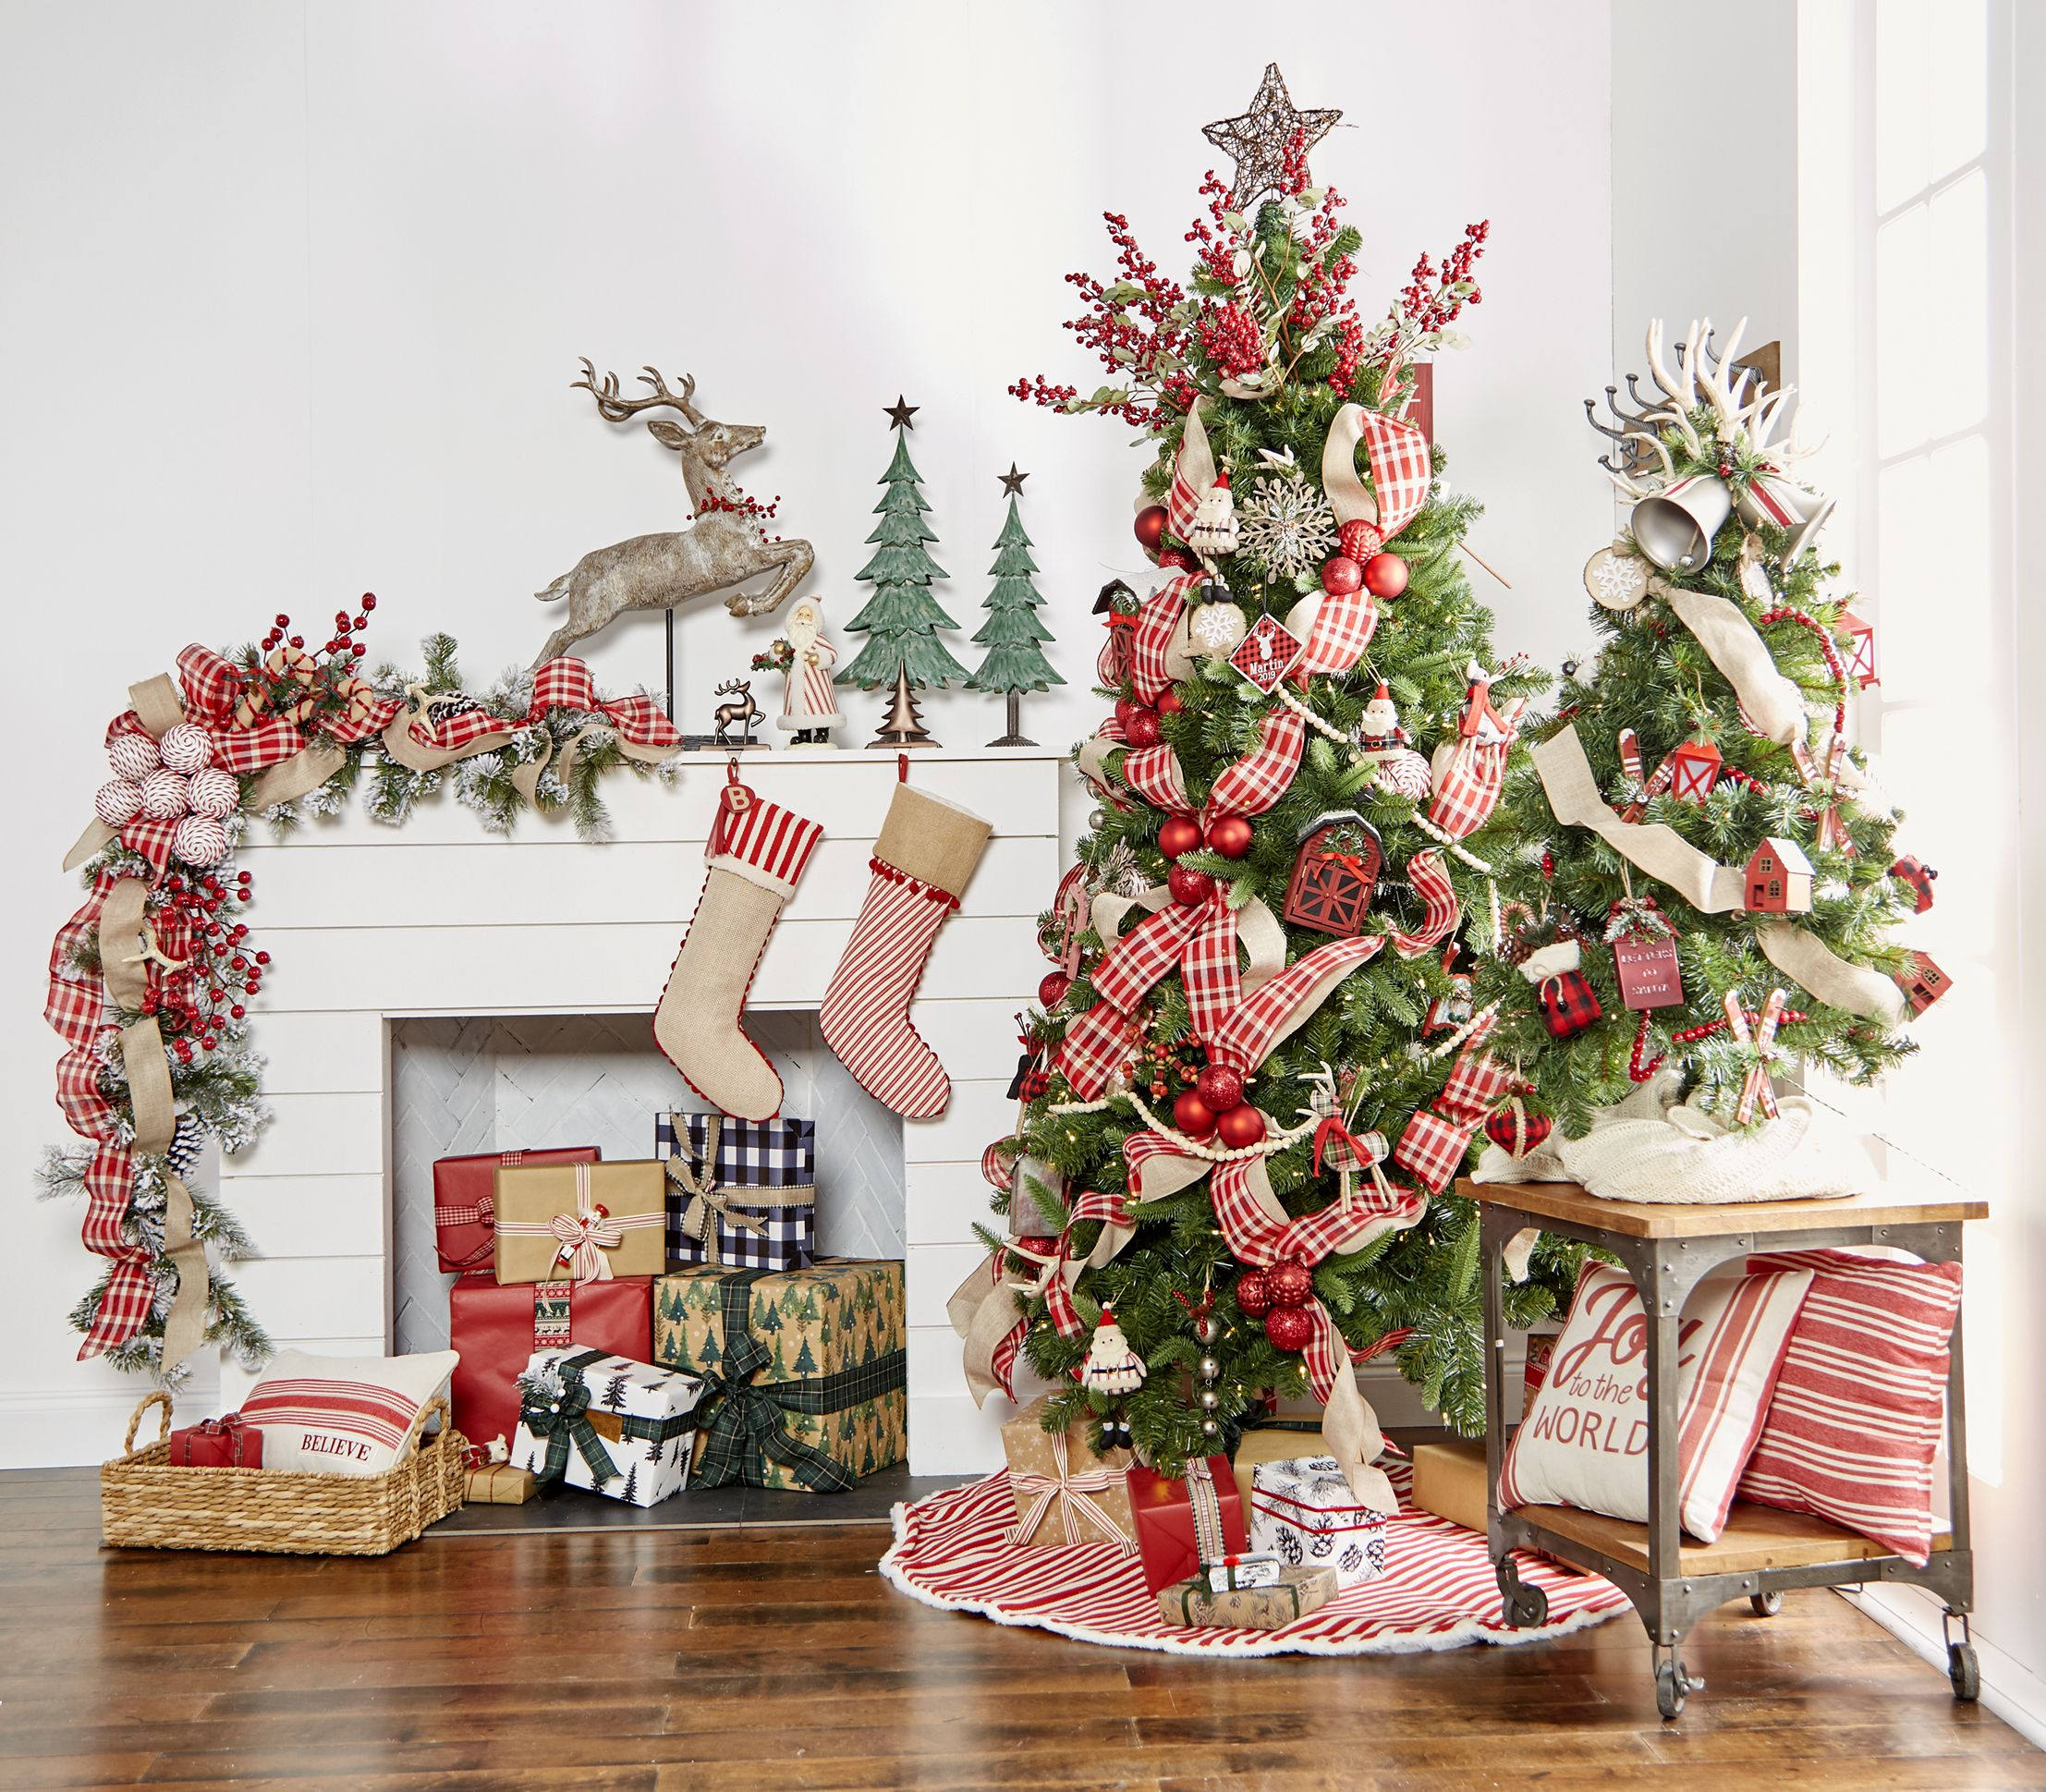 Creating Holiday Magic With Michaels The Pickled Rose Christmas Tree Inspiration Holiday Christmas Tree Michaels Christmas Trees